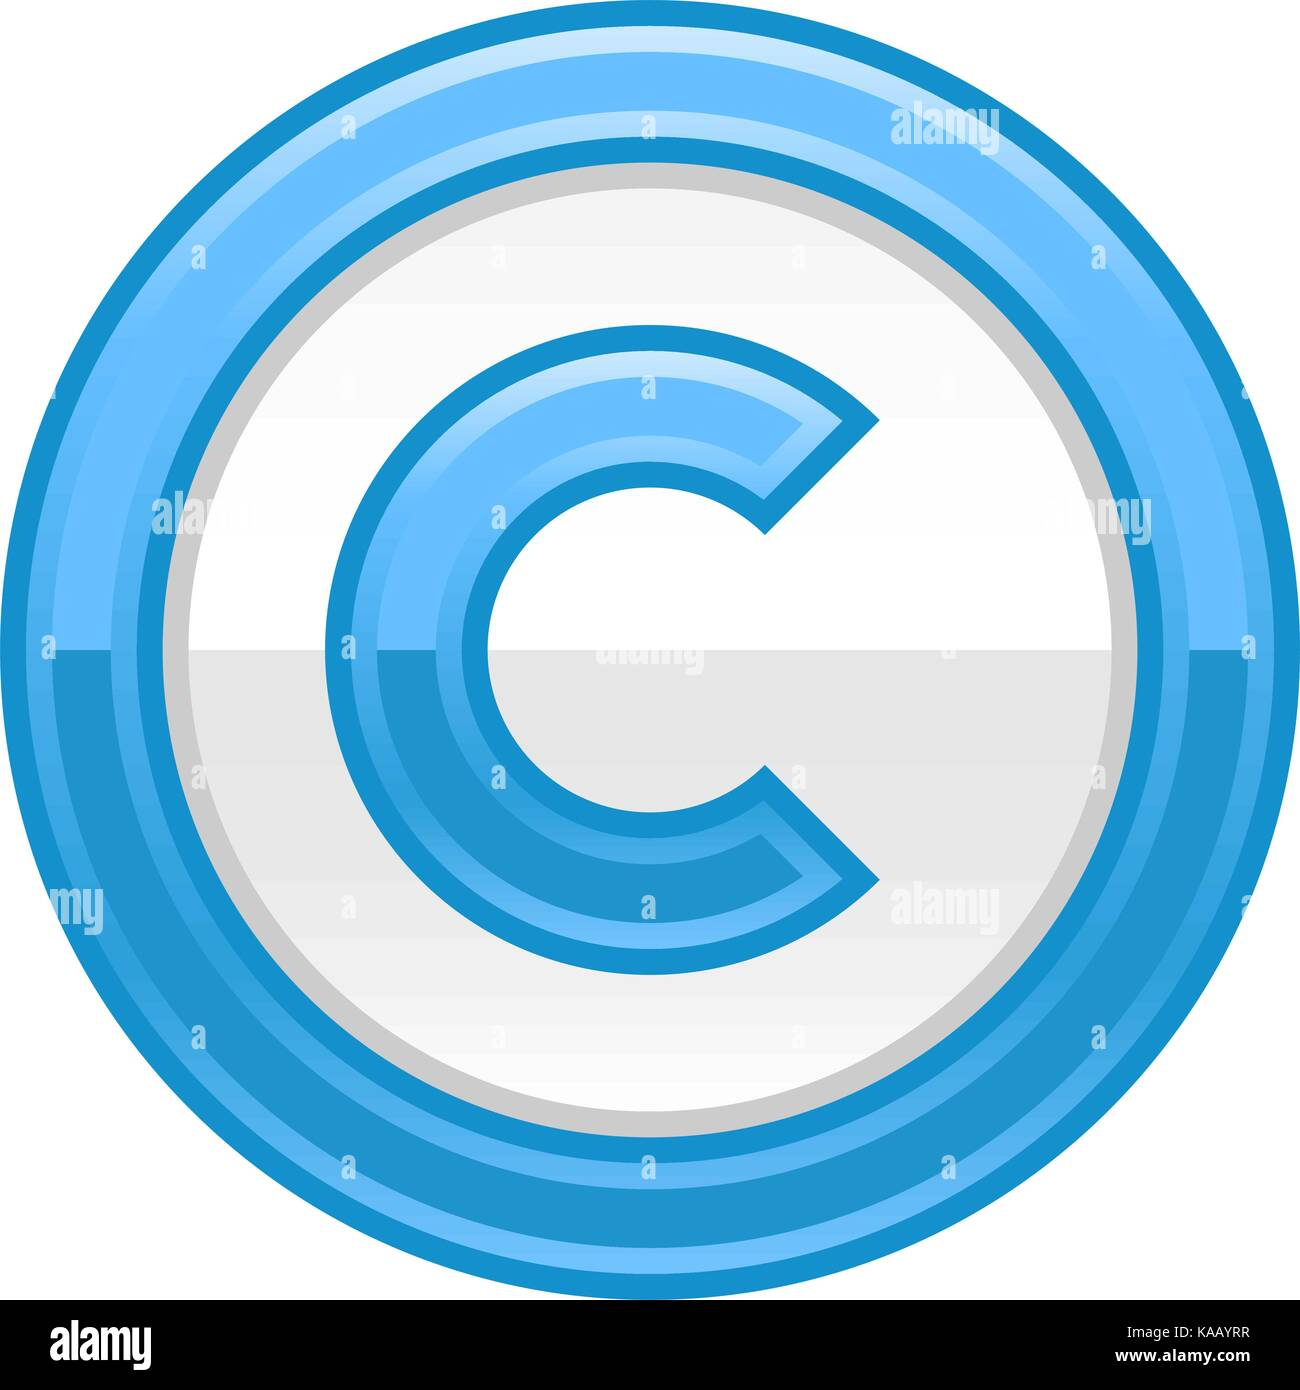 the copyright symbol, or copyright sign, a circled capital letter c Copyright Warning the copyright symbol, or copyright sign, a circled capital letter c colored rounded button web internet icon with � sign vector illustration